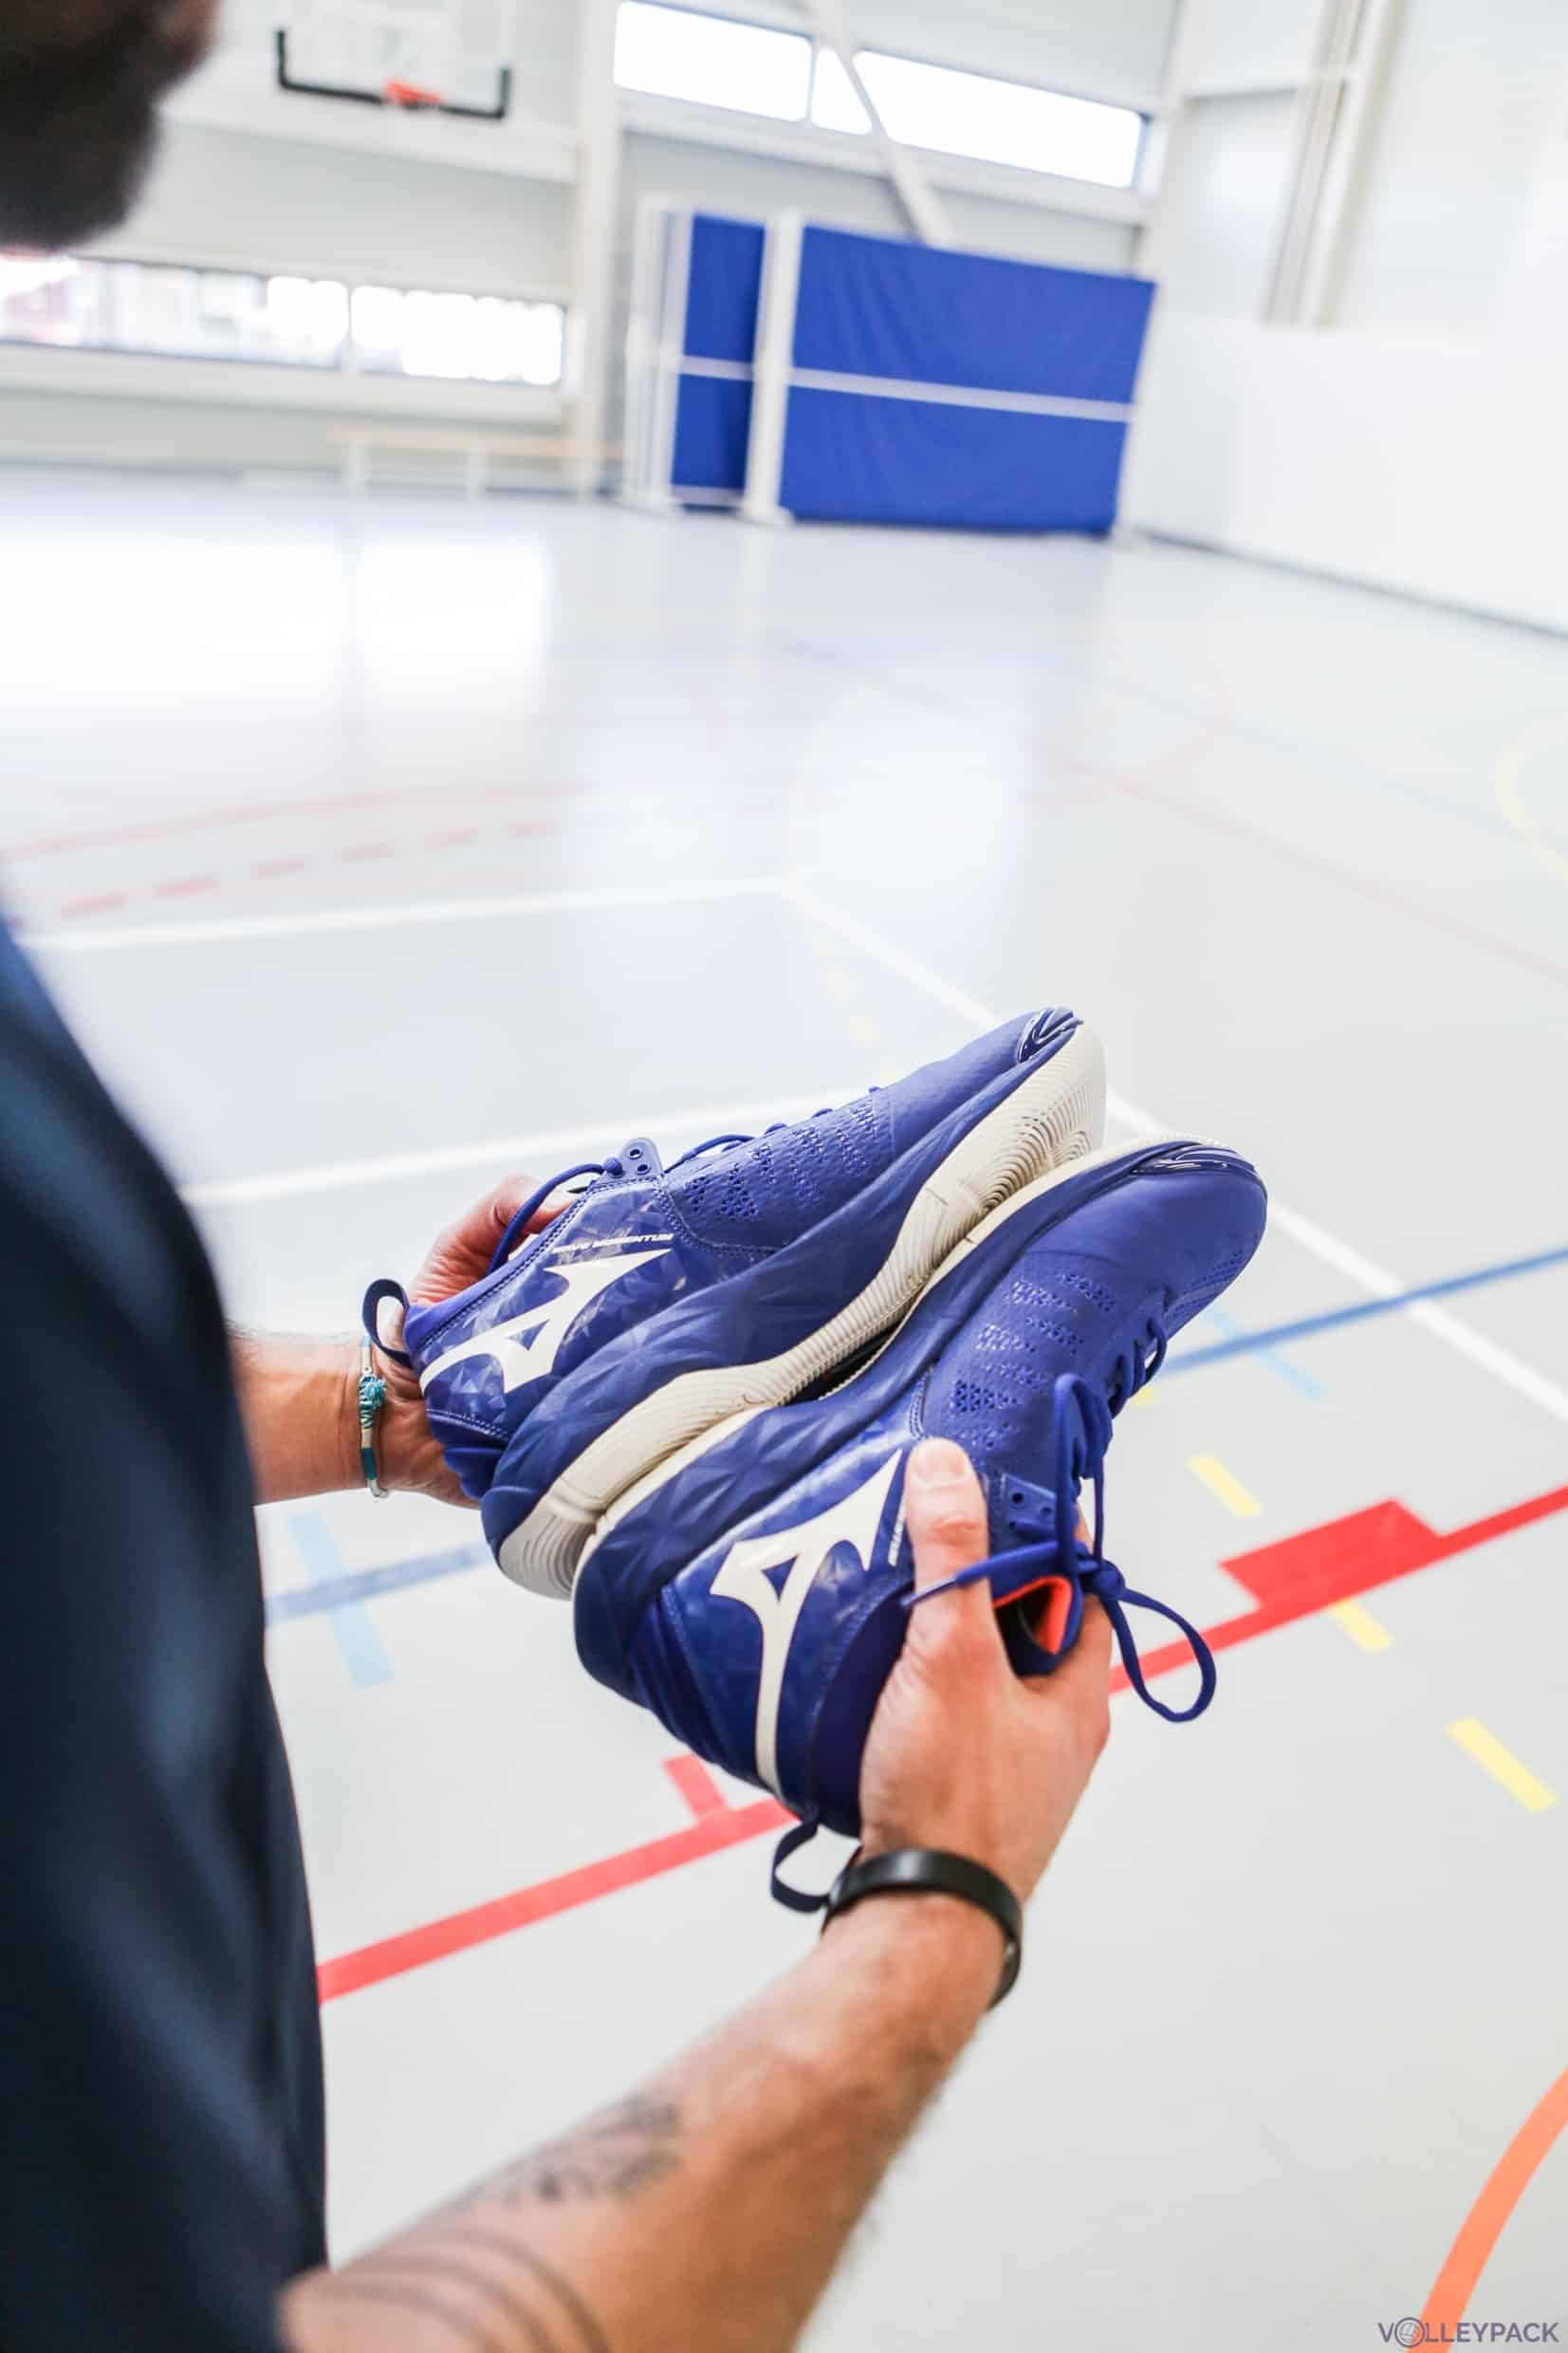 test-mizuno-wave-momentum-2019-volleypack-17